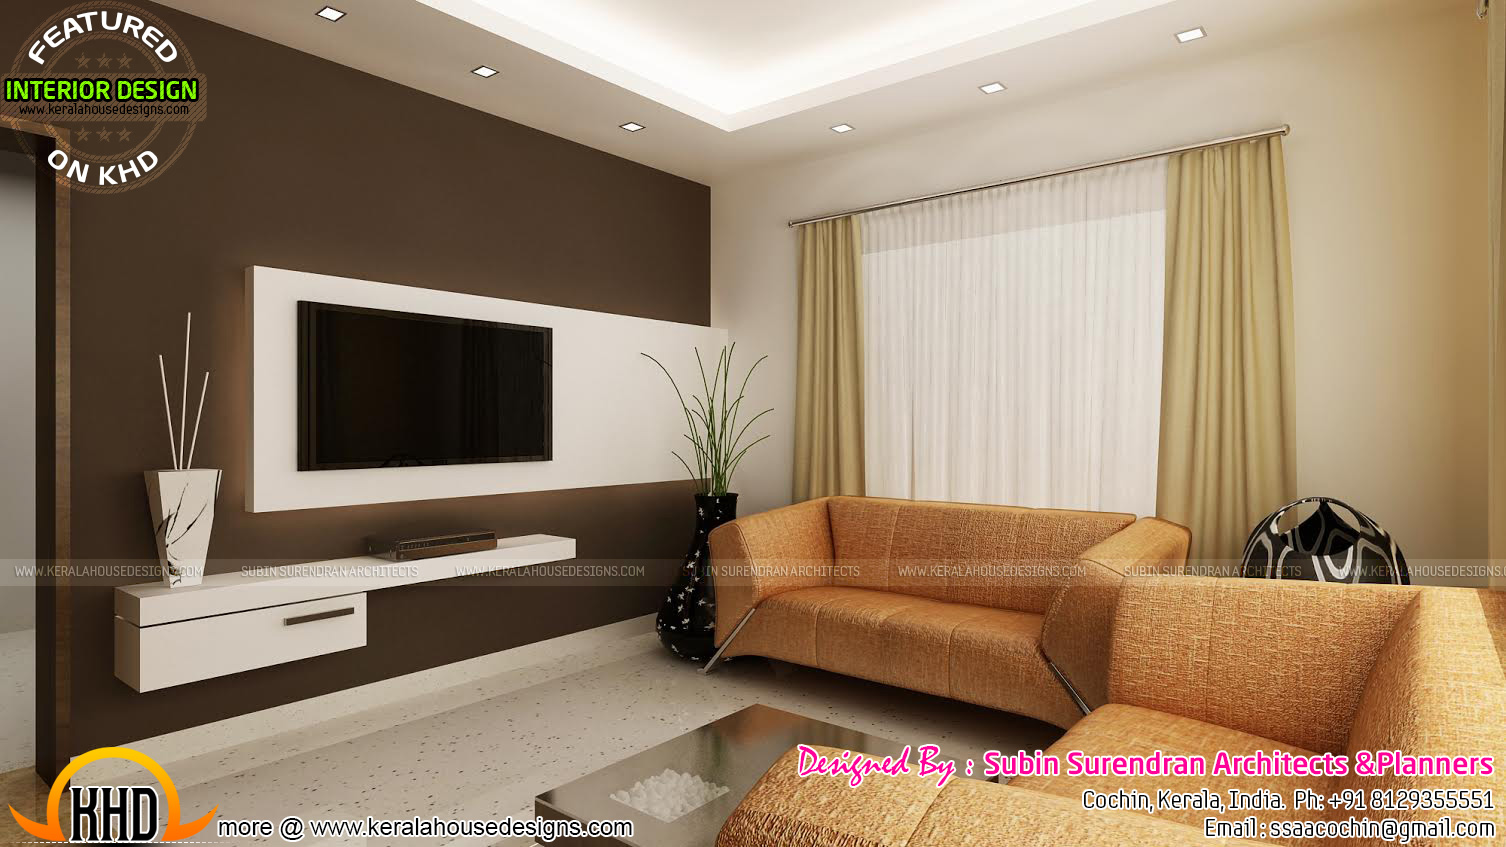 Living rooms modern kitchen interiors in kerala kerala for Interior design styles living room